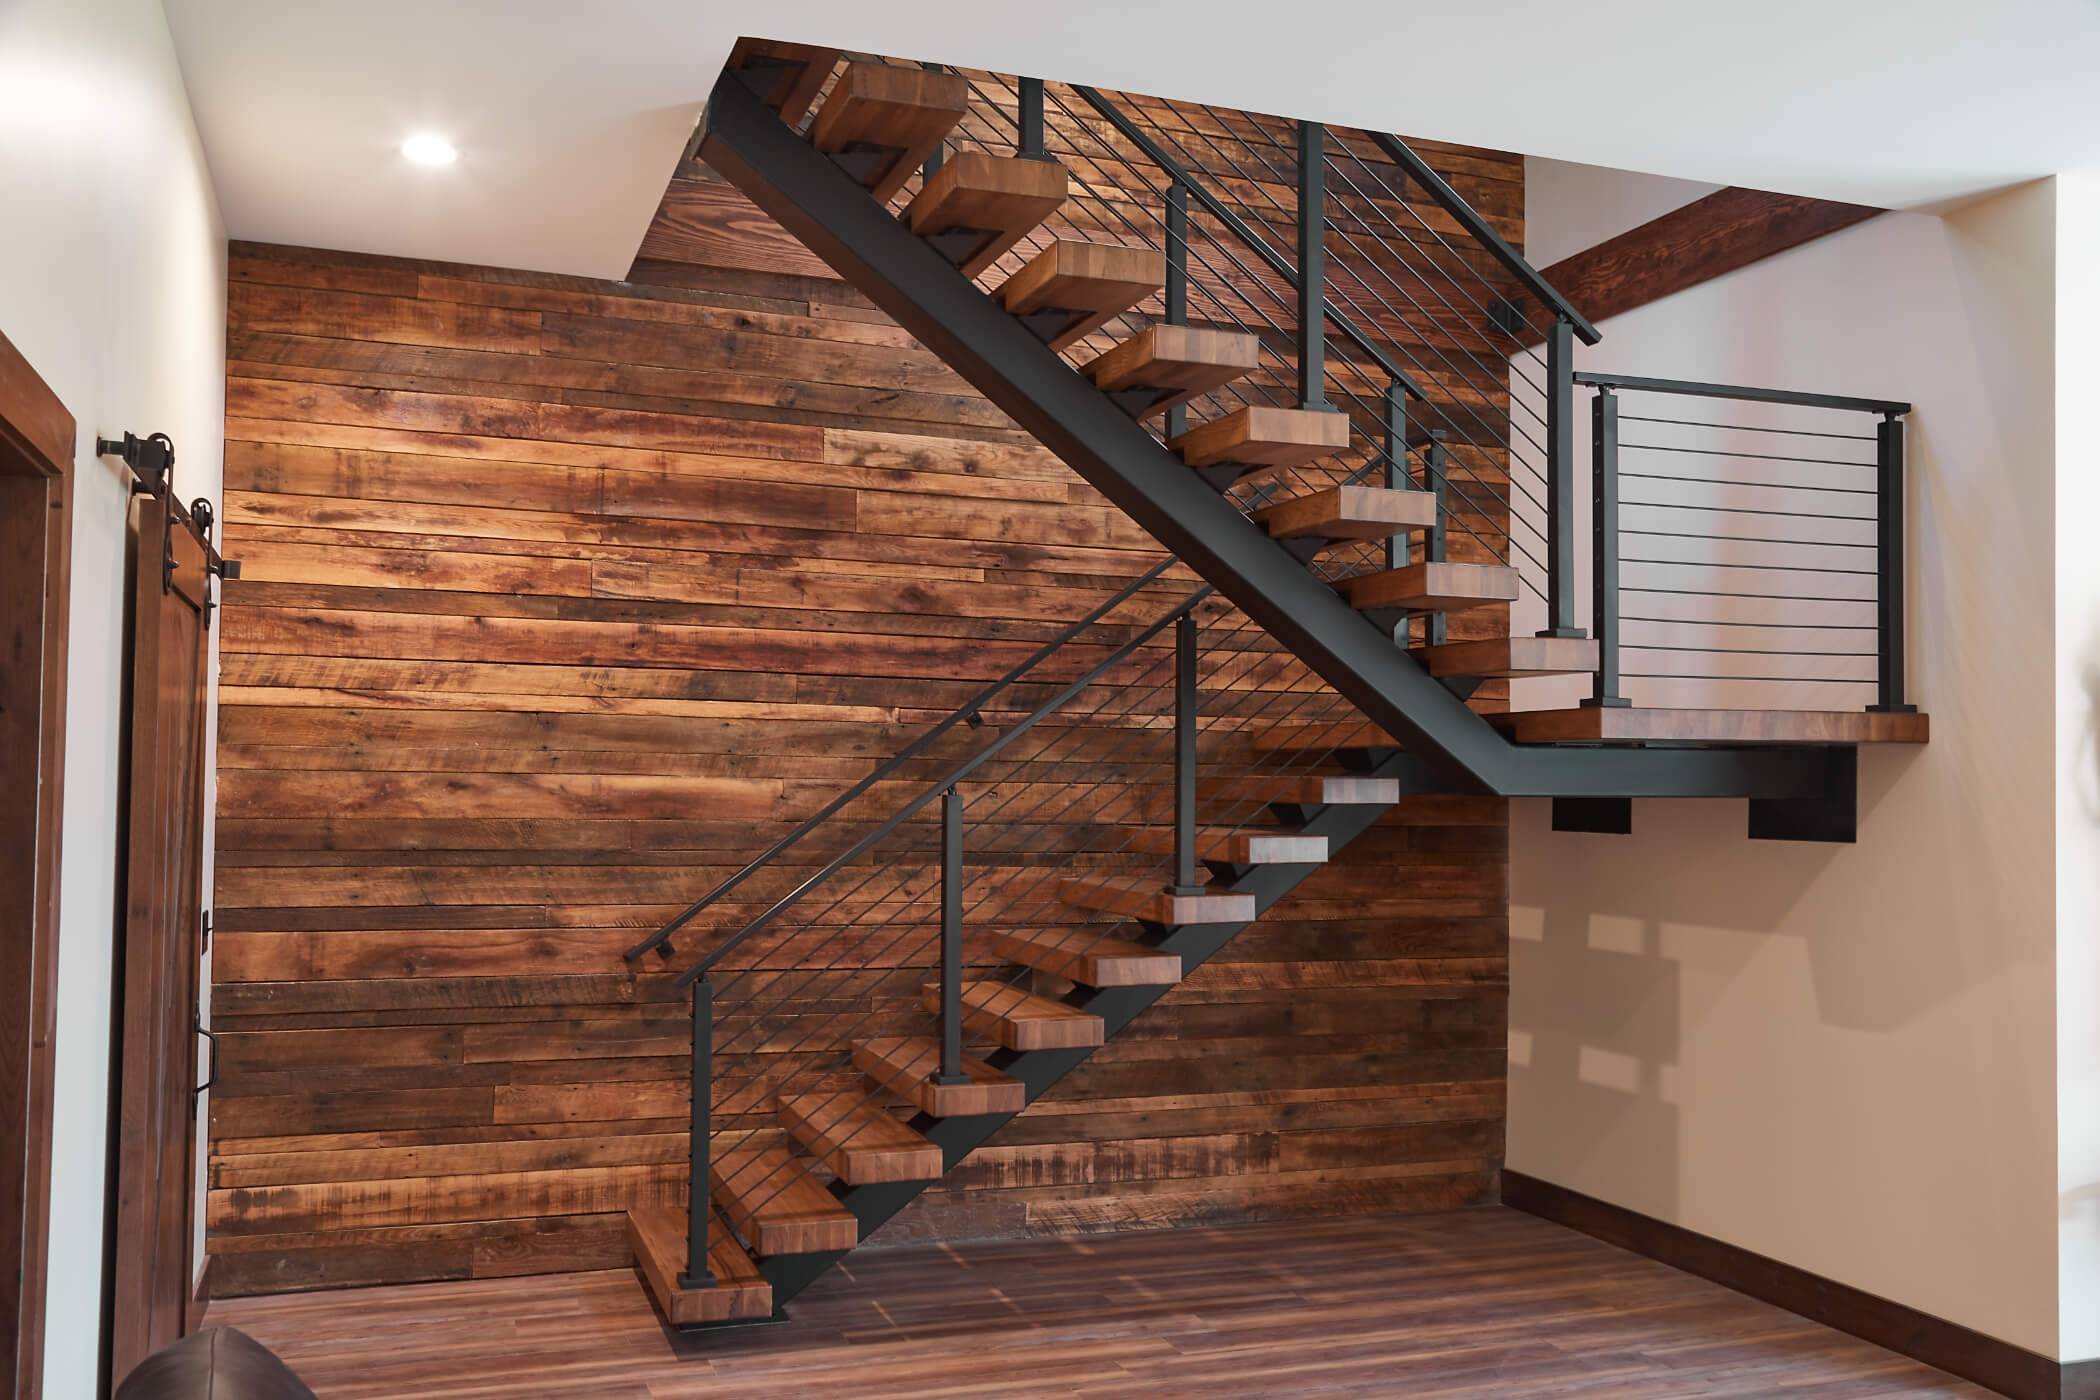 Steel Stairs Prefabricated Diy Metal Stairs Viewrail | Cost Of Outdoor Stairs | Handrail | Staircase | Concrete Steps | Stair Treads | Spiral Staircase